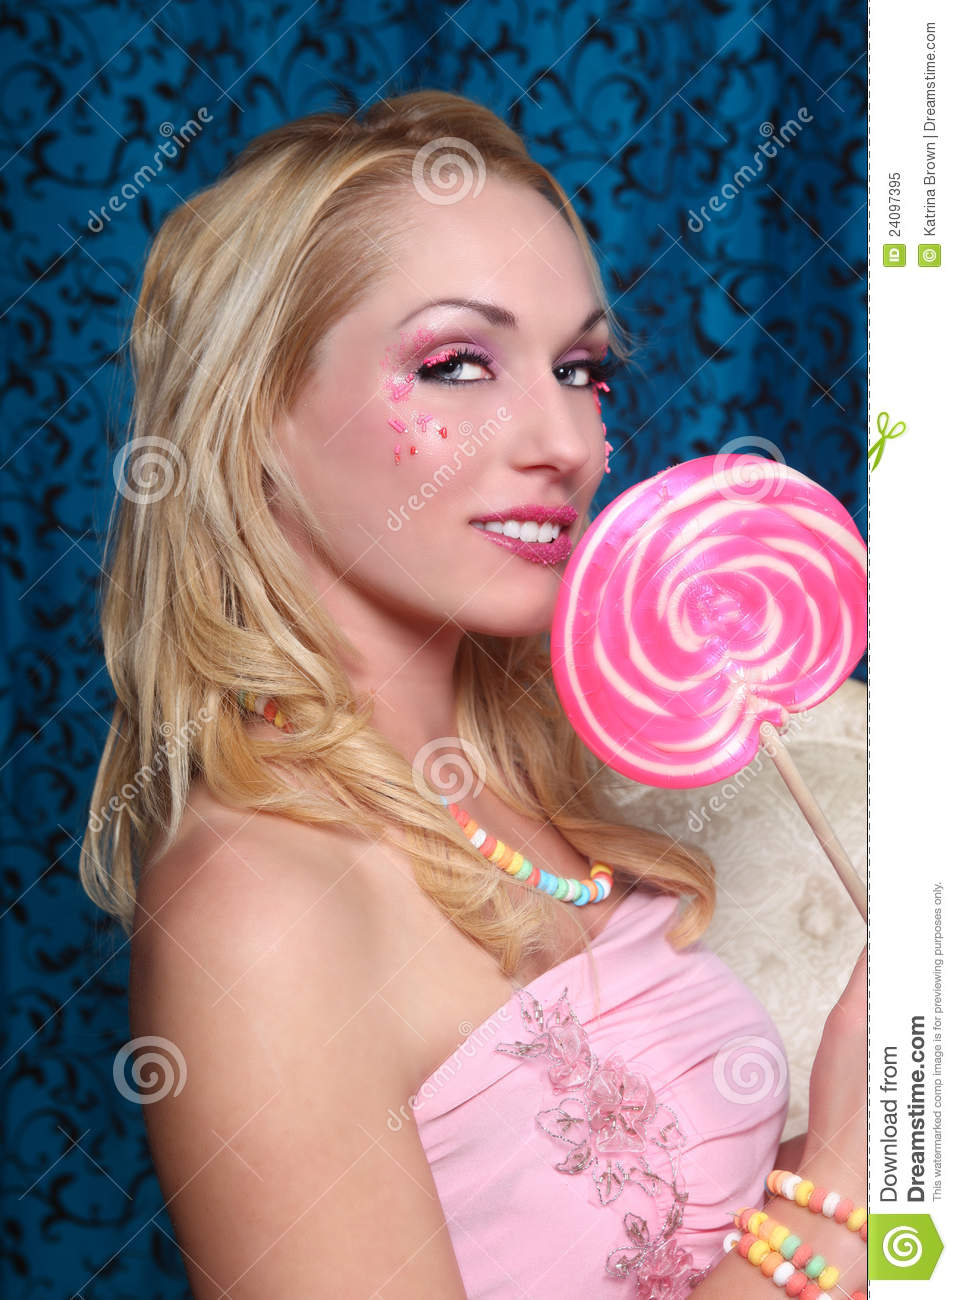 Candy Shoot